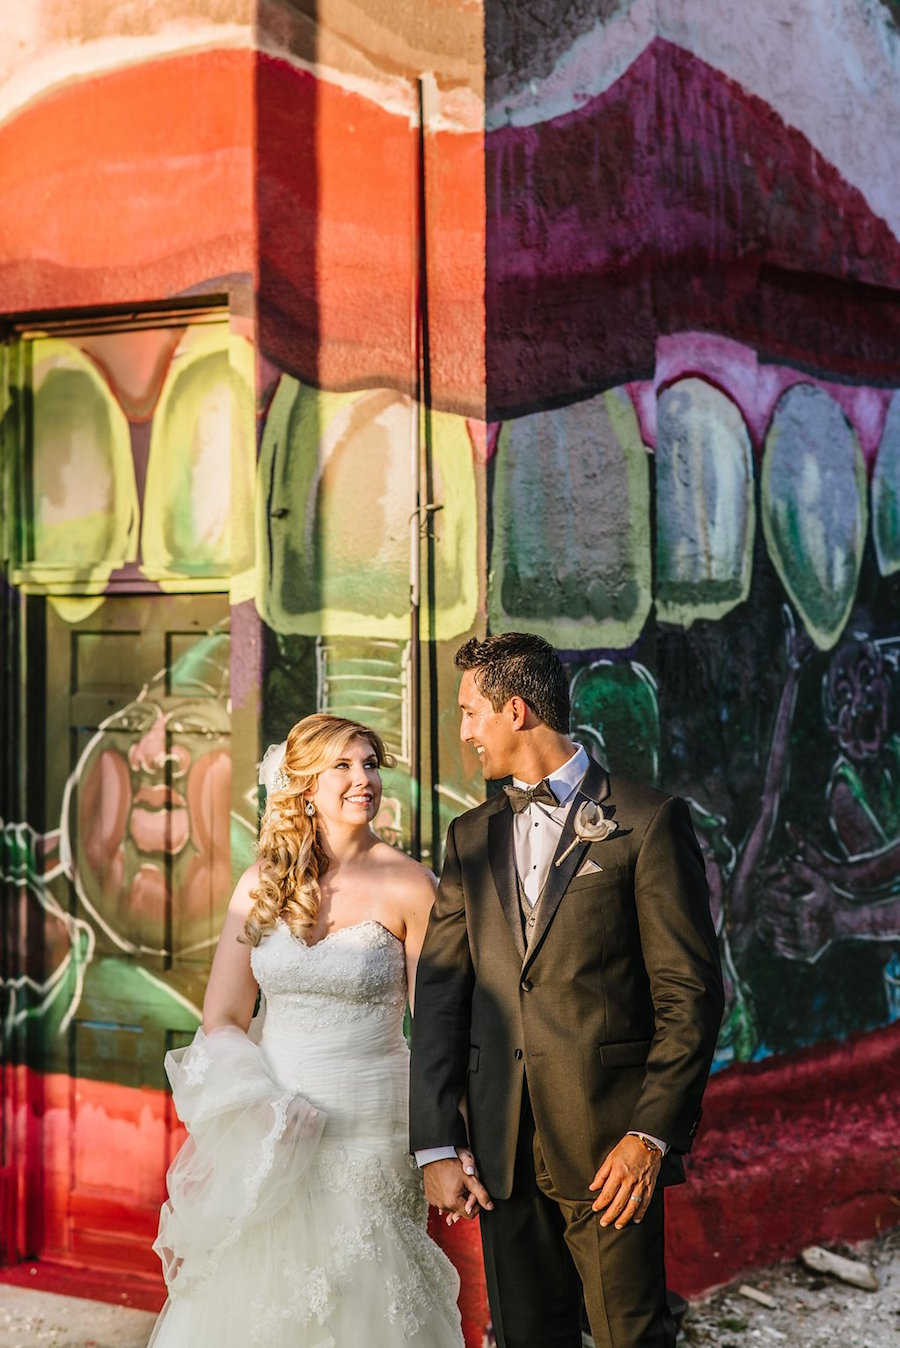 Bride and Groom Outdoor Downtown St. Pete Wedding Portrait with Graffitti Backdrop | Wedding Hair and Makeup Artist Michele Renee The Studio